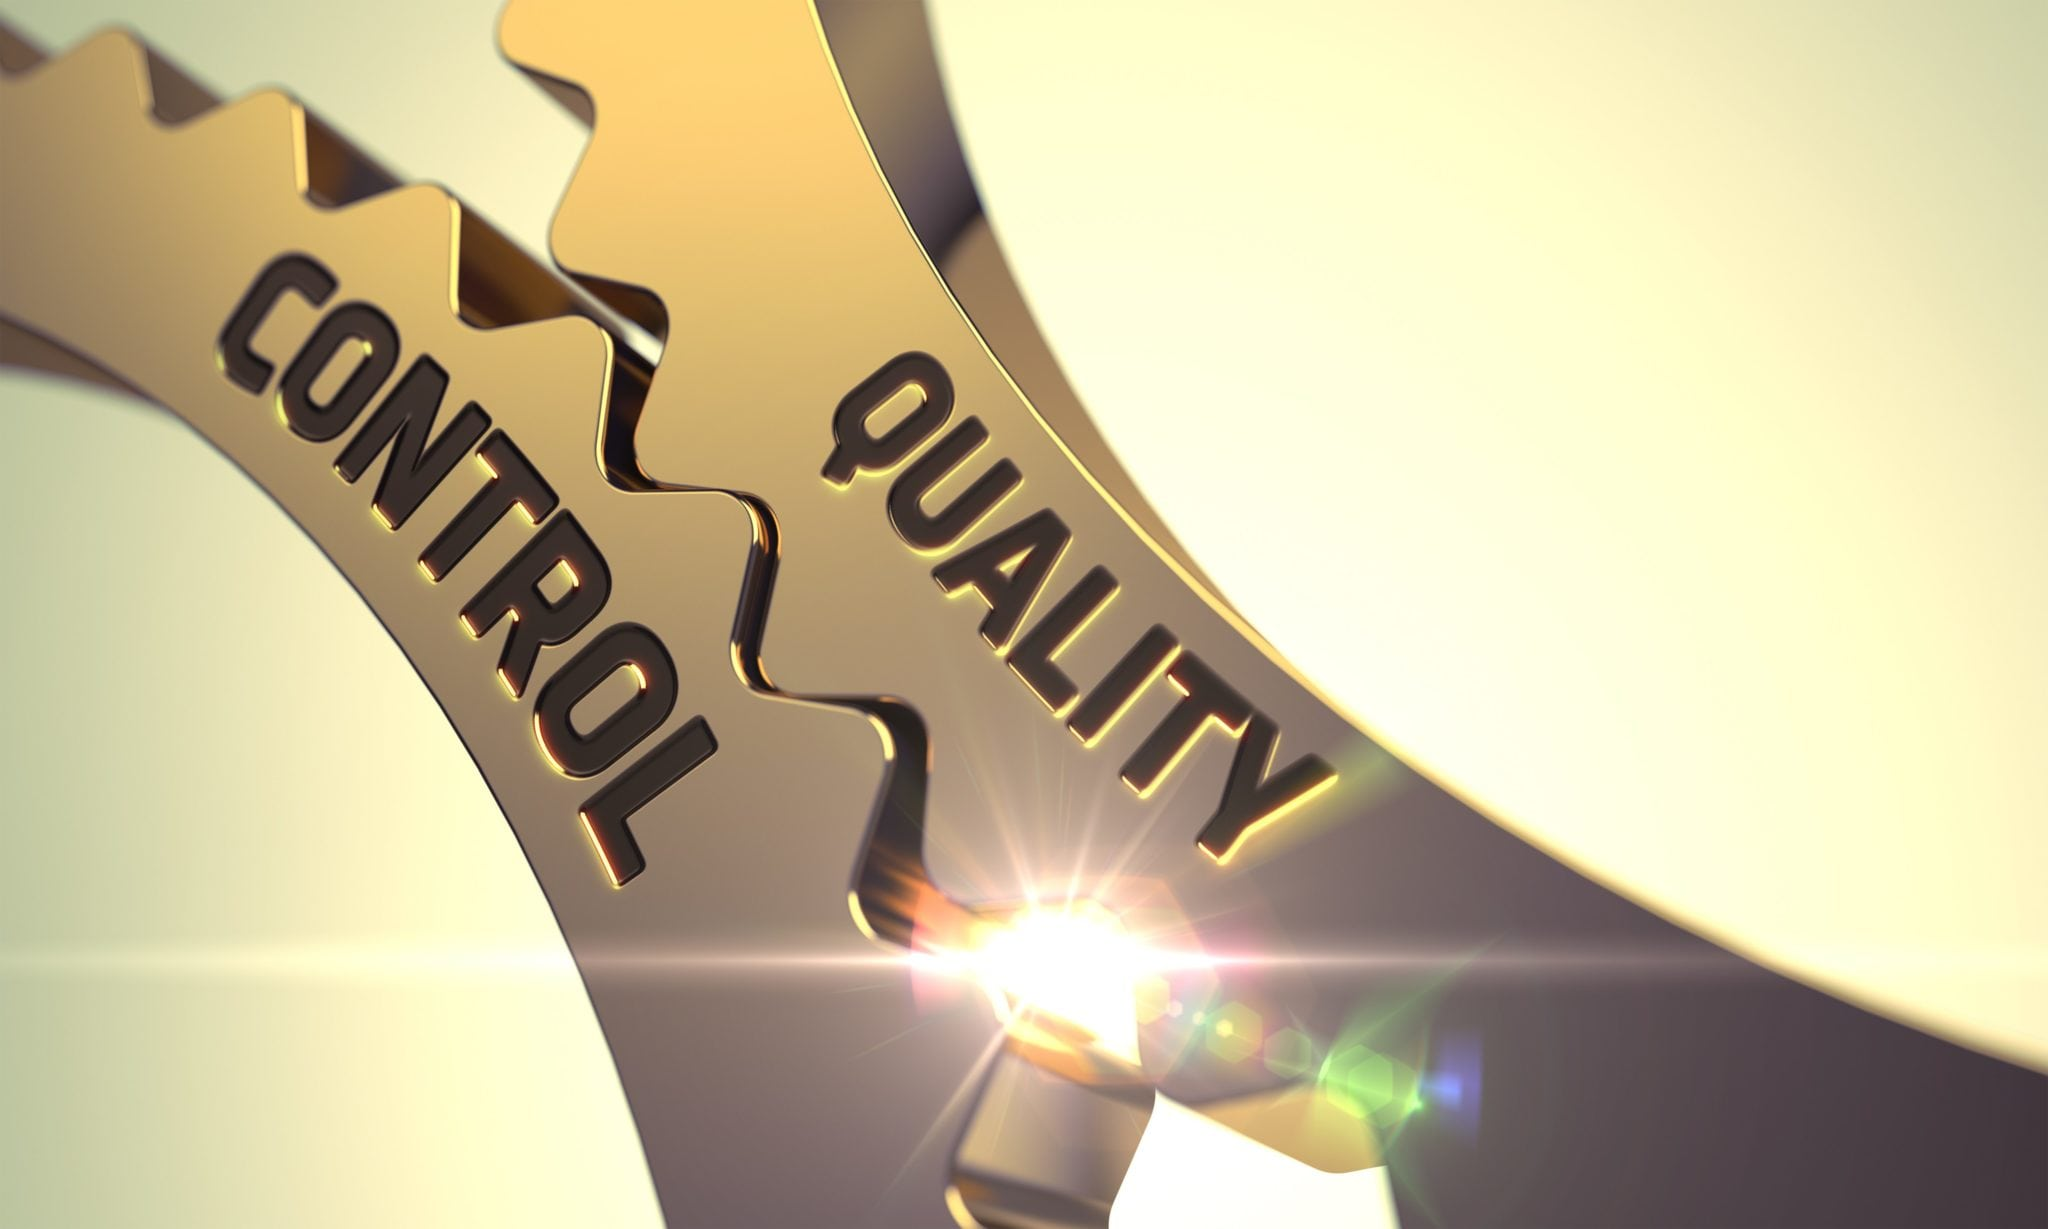 All Metals Fabrication Hires New Quality Assurance Director